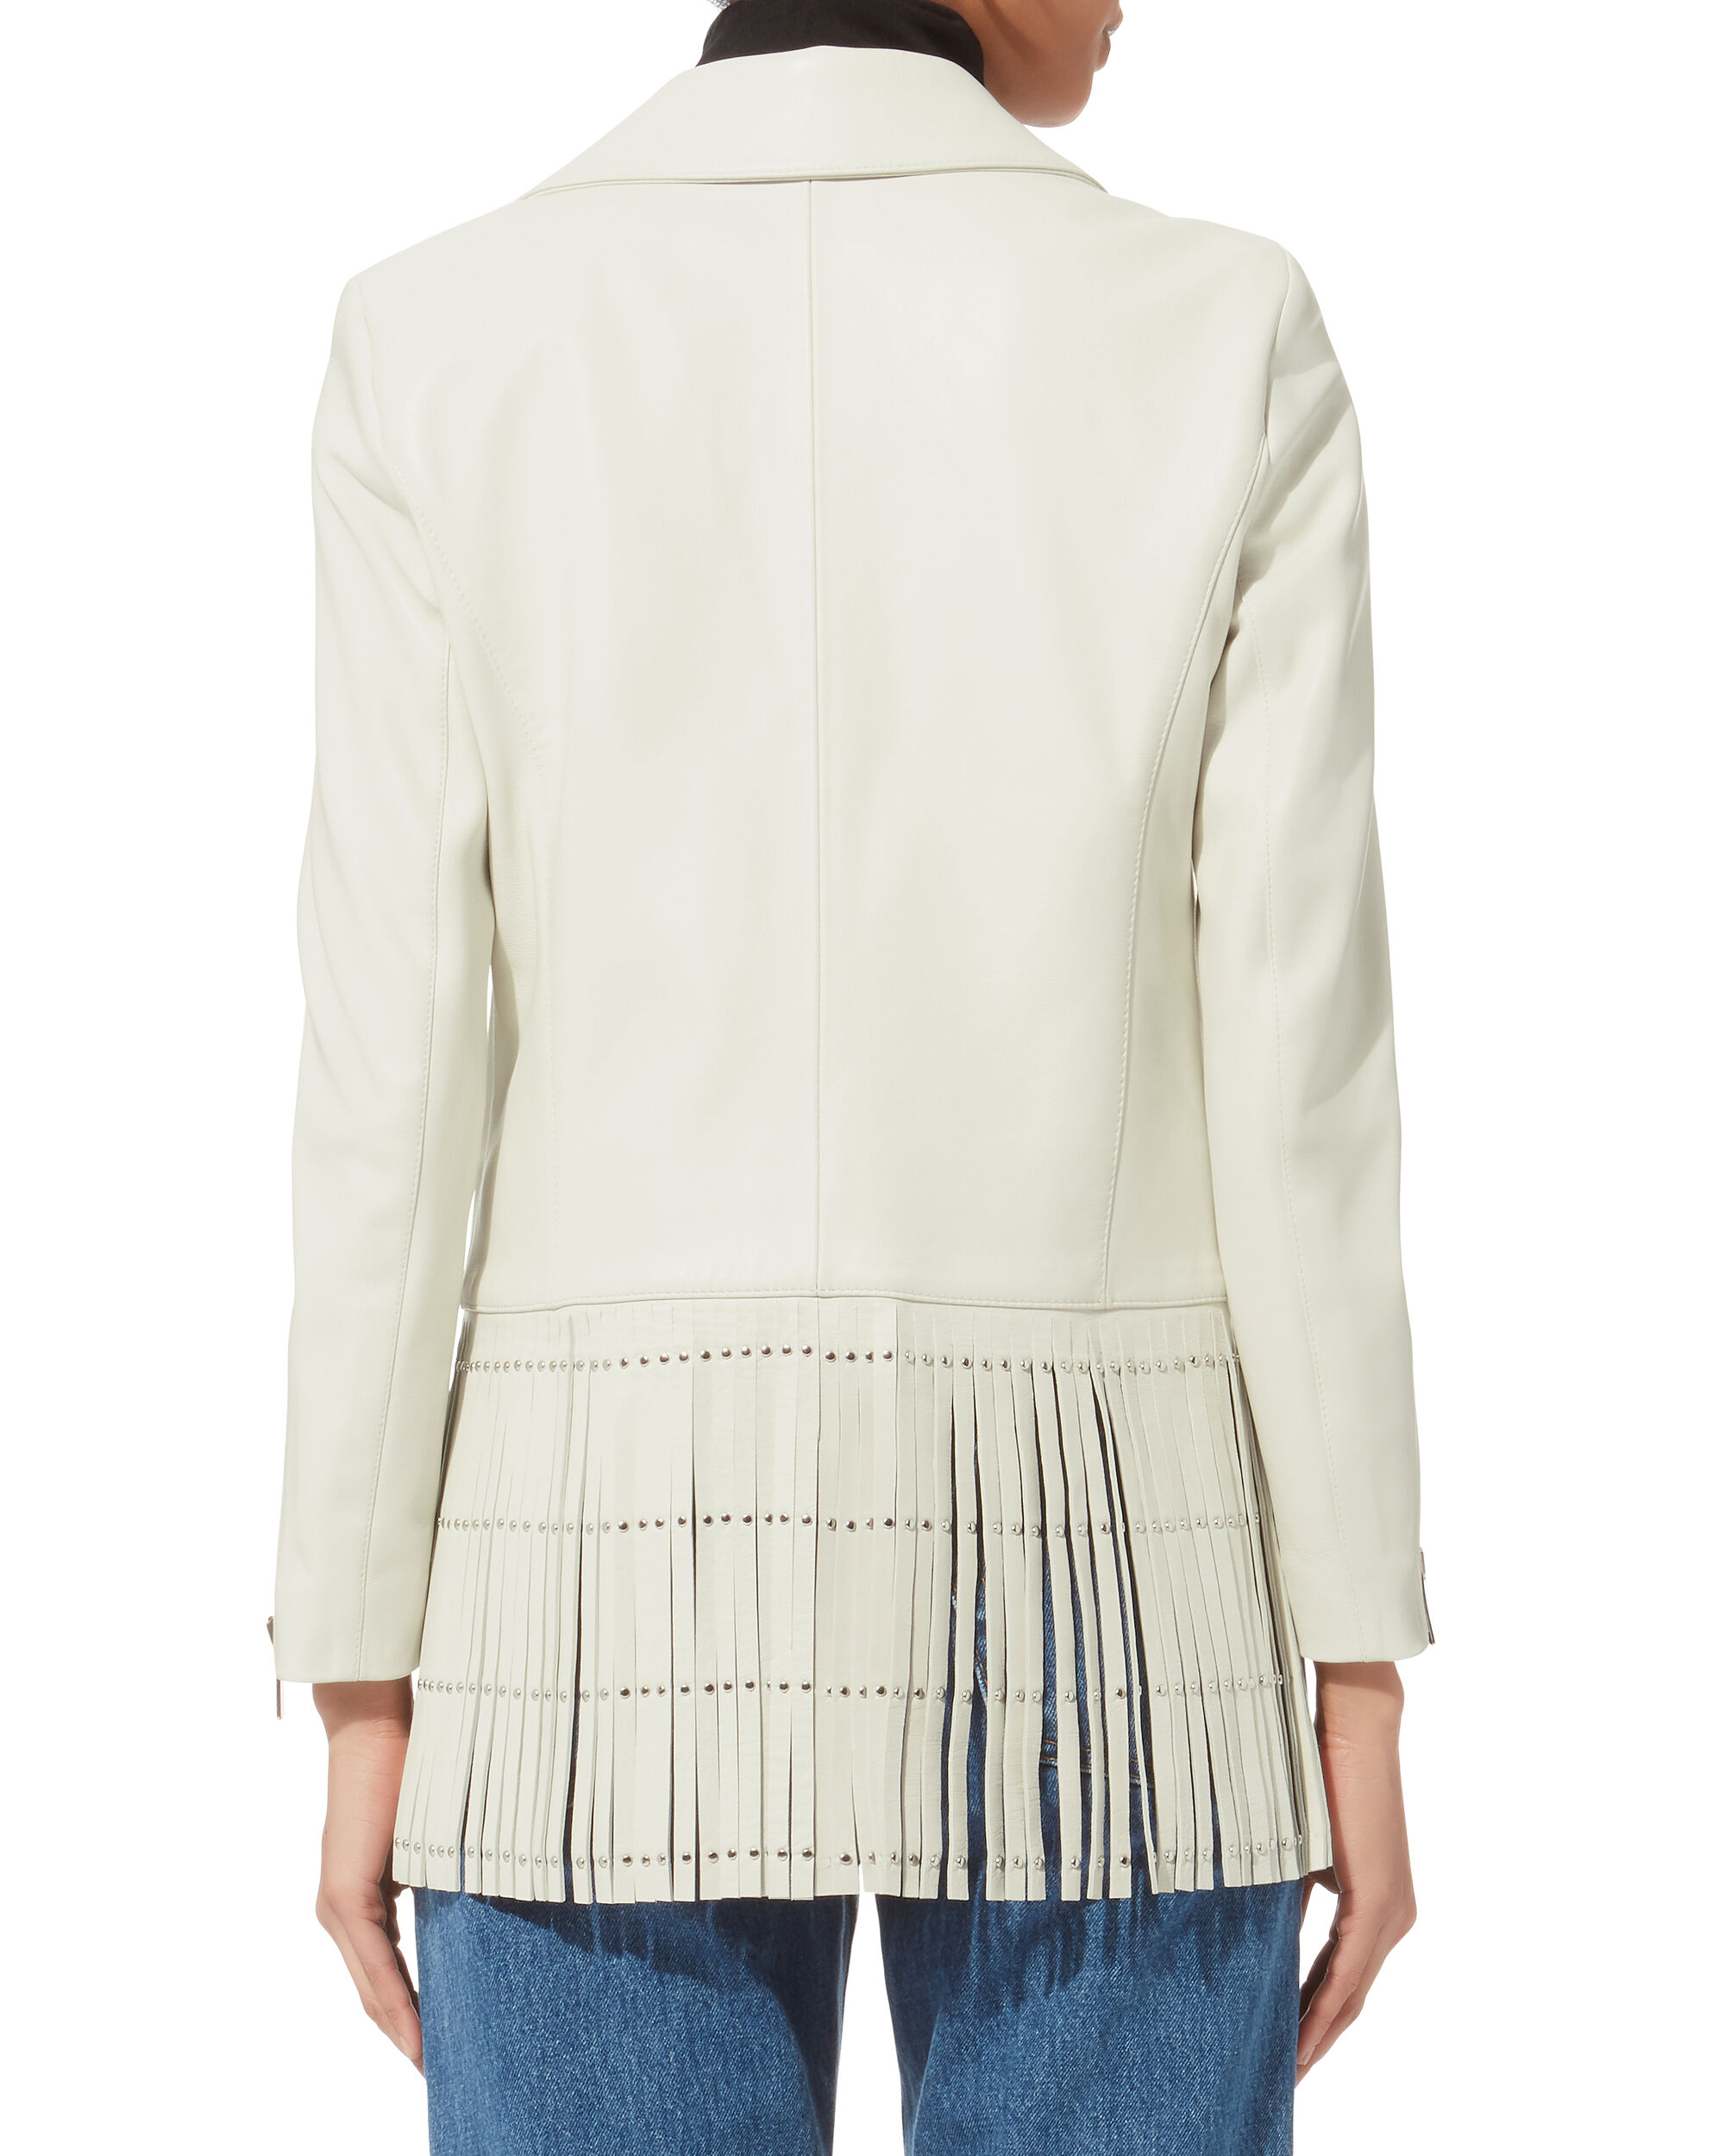 Saint White Fringe Leather Jacket, WHITE, hi-res